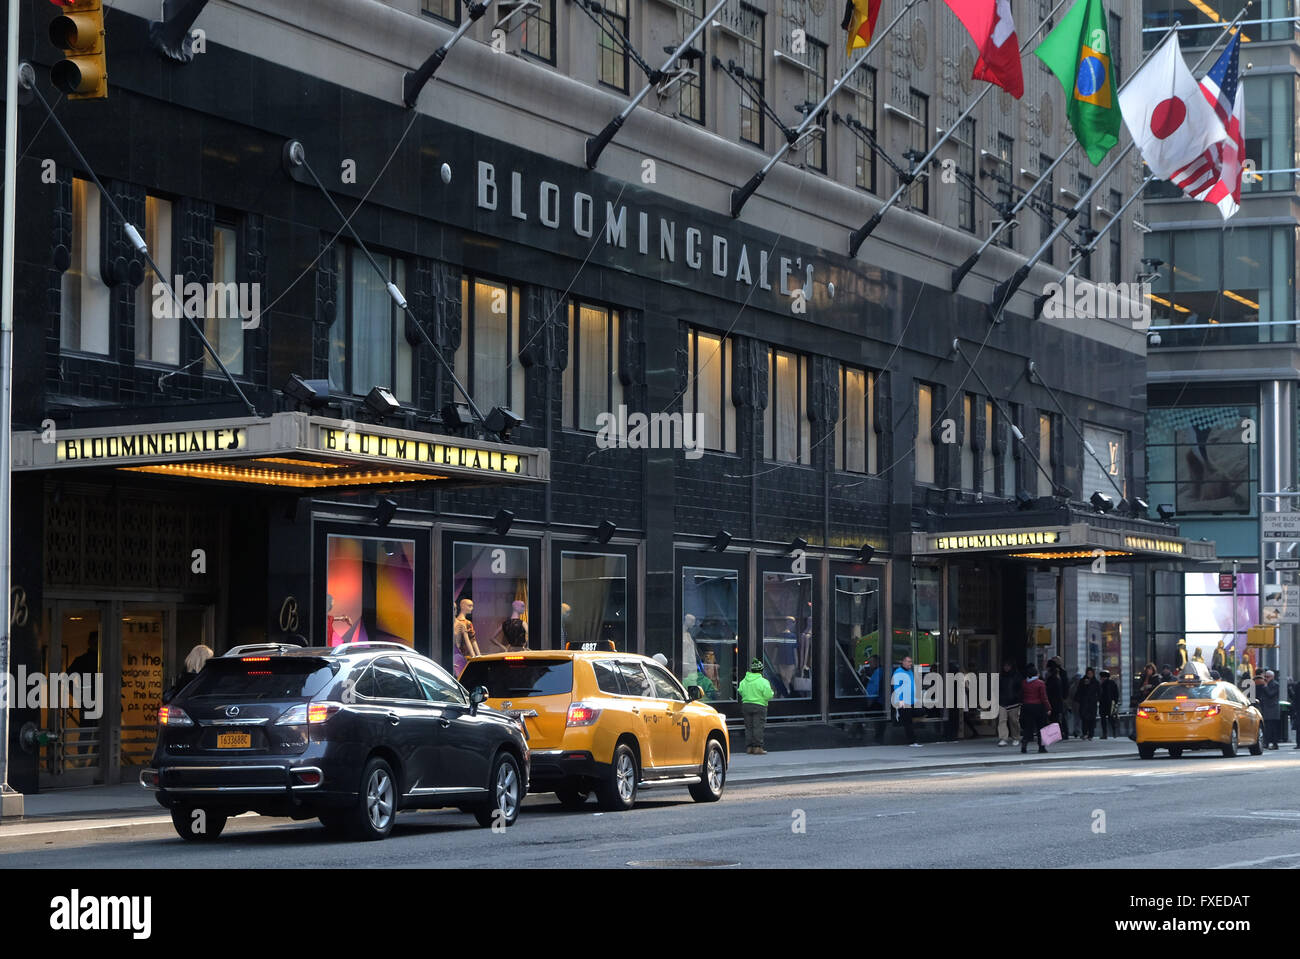 Jun 20,  · Bloomingdales is a big national chain. The flagship store in New York City is a very large department store with floors of fashion and home goods TripAdvisor reviews.